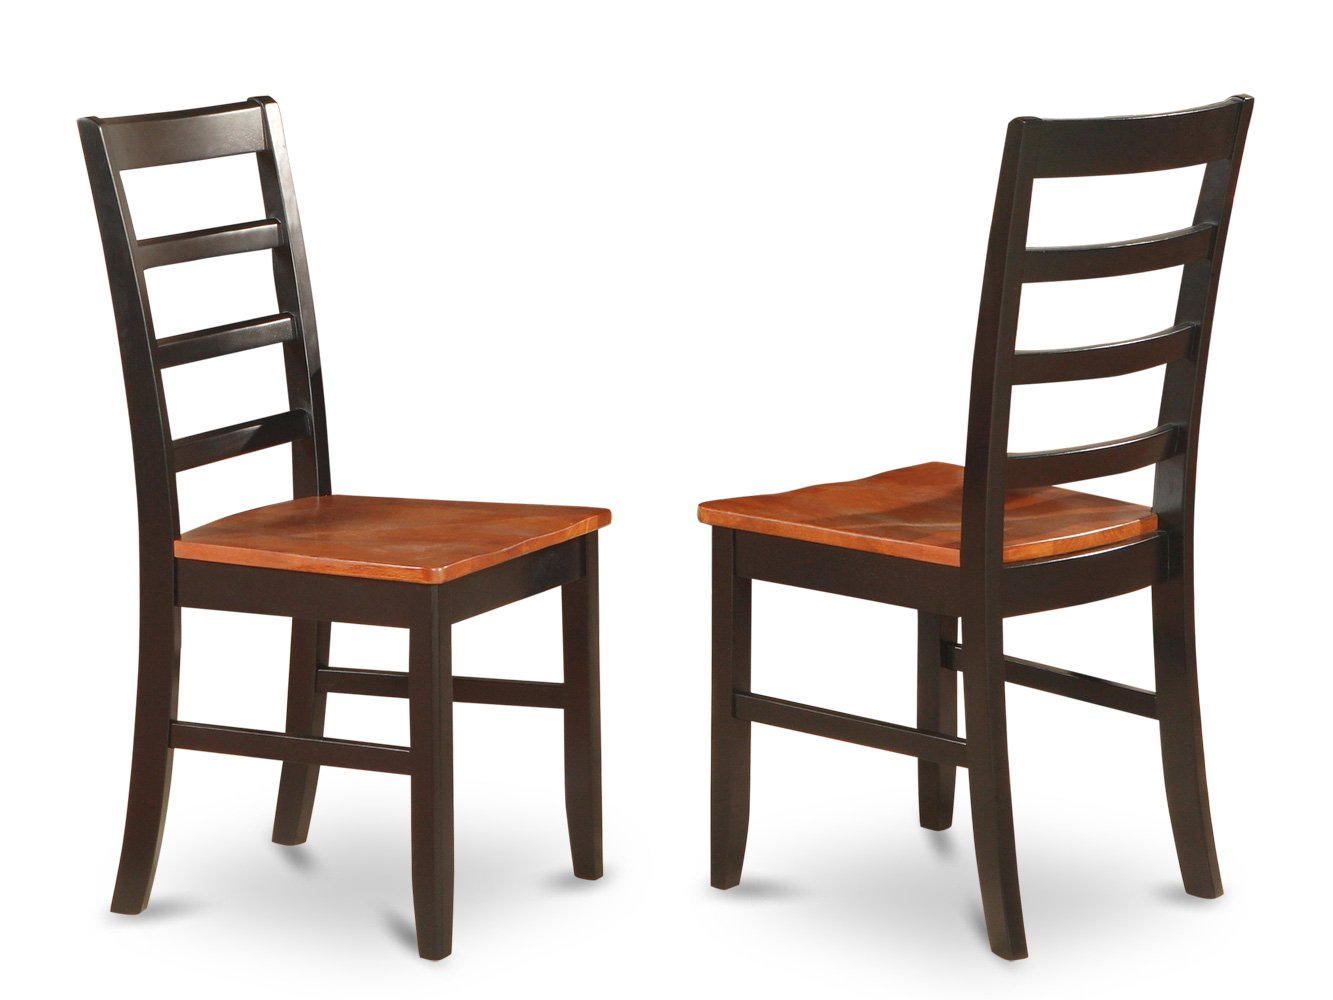 Set of 2 parfait   dining room chairs with wood or upholstery seat in Black & Cherry finish.